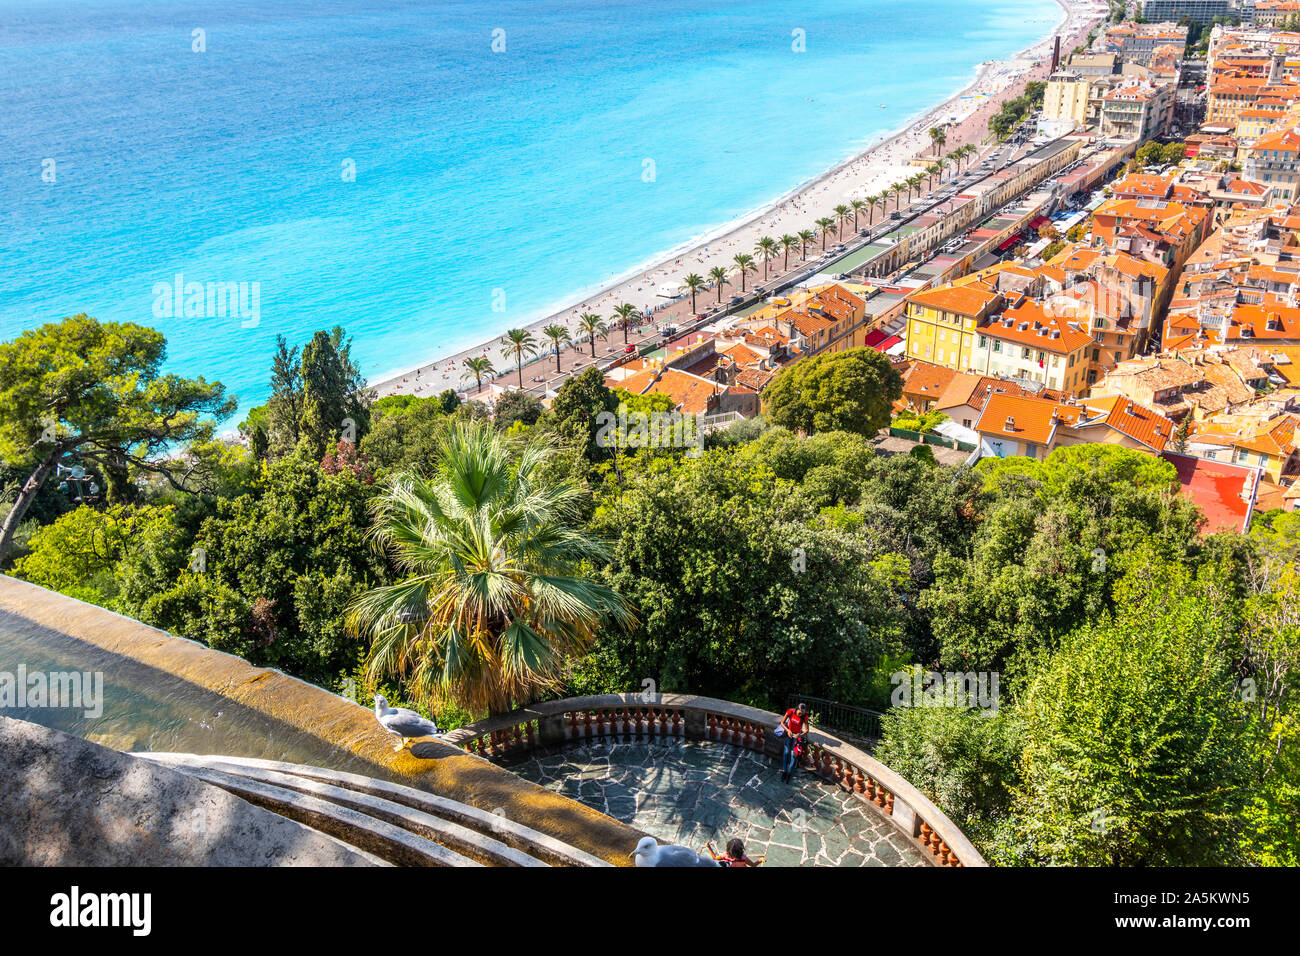 A female tourist on Castle Hill relaxes on a deck under the waterfall and above the Old Town, beach and promenade of Nice, France. Stock Photo